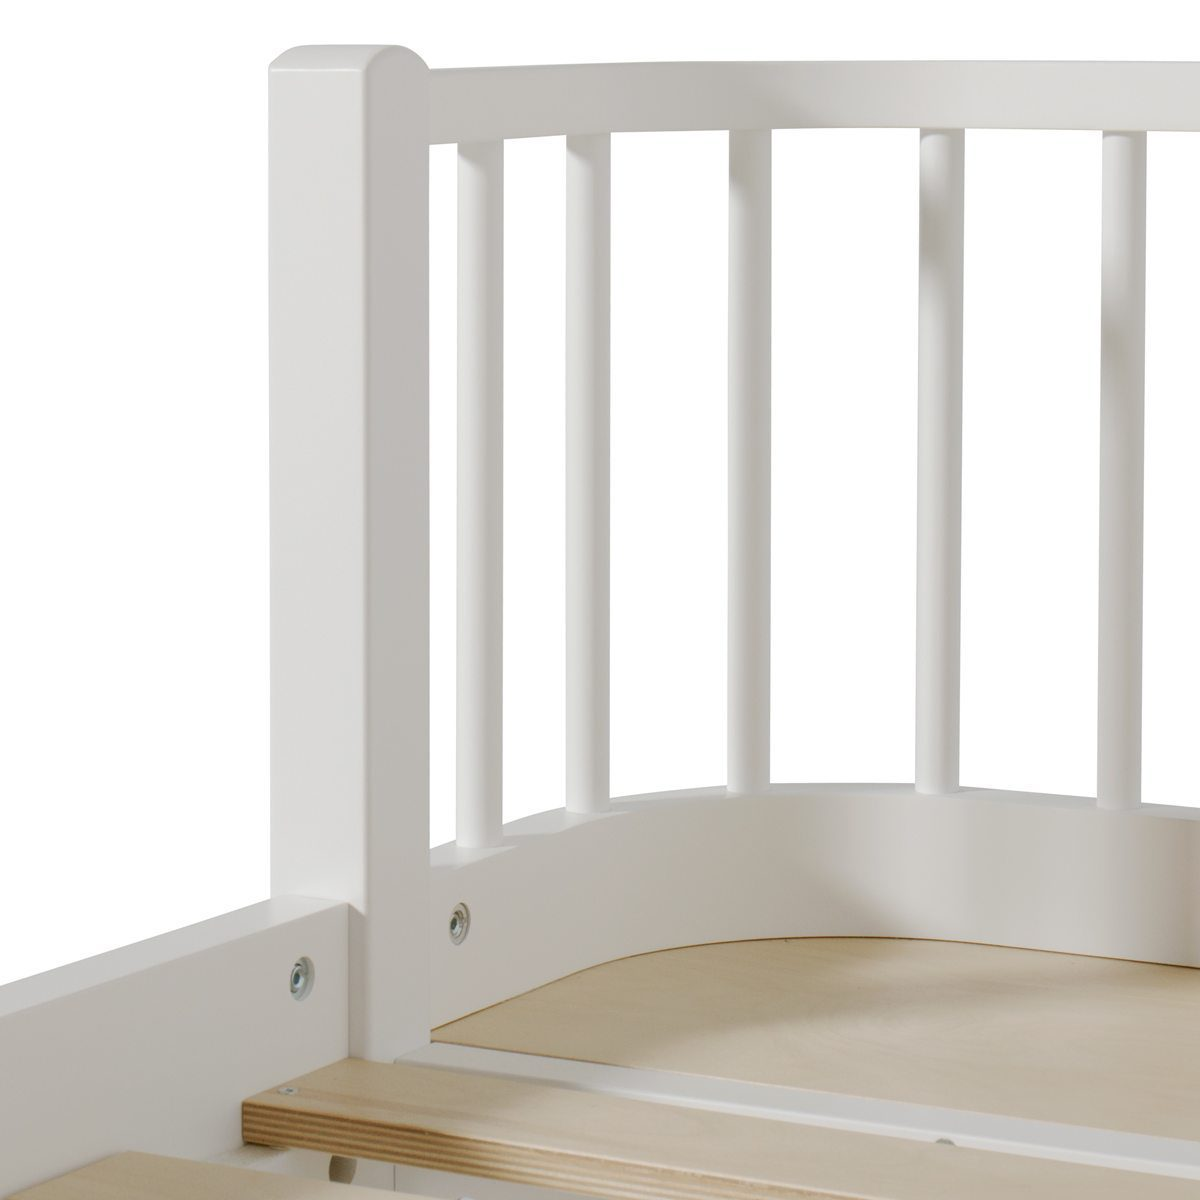 Oliver Furniture juniorbed Wood